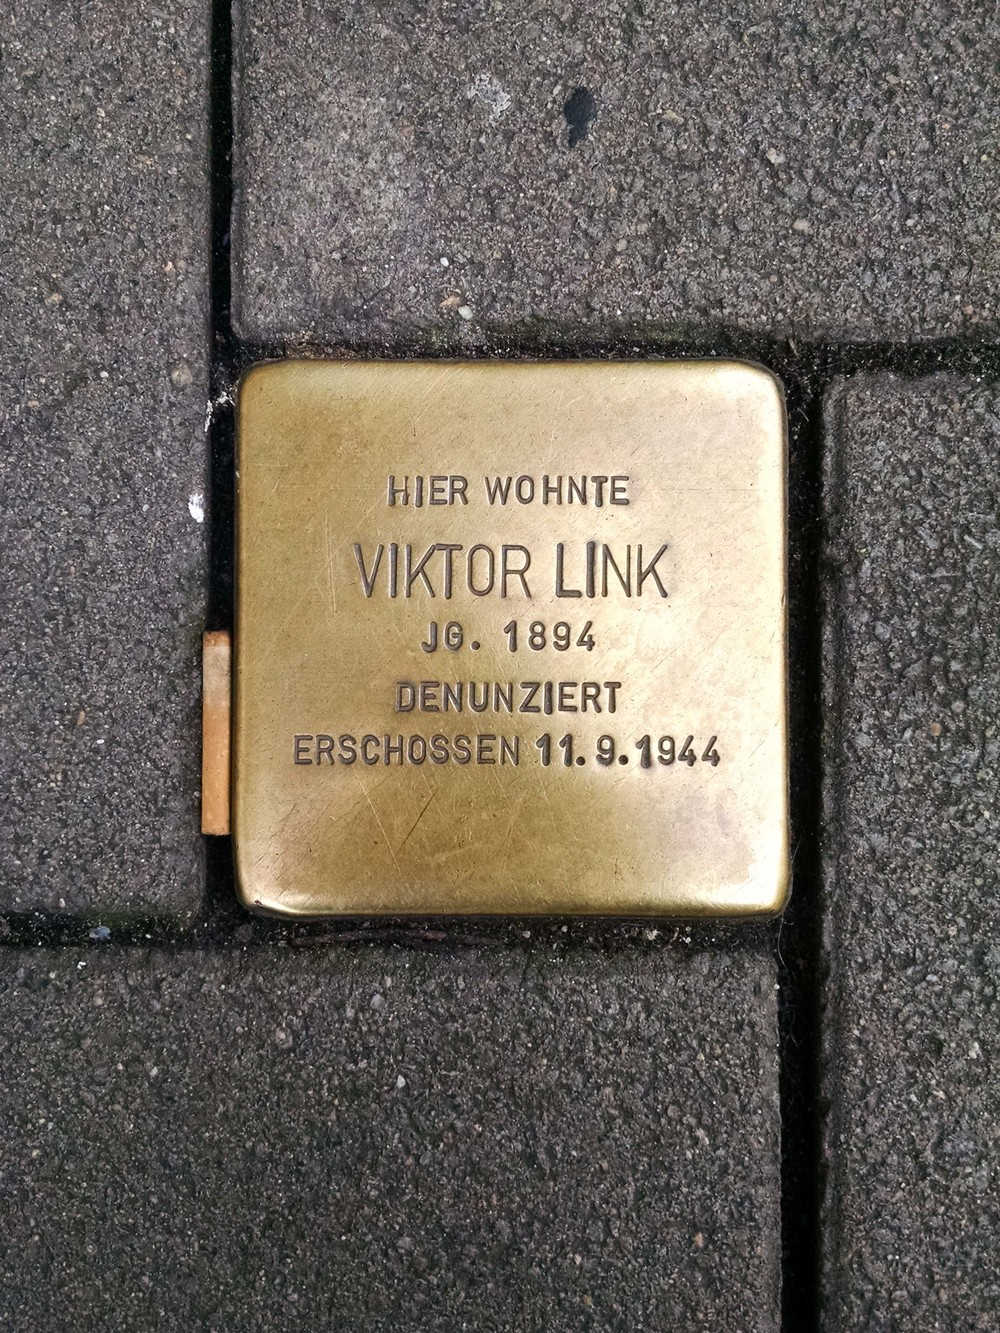 Viktor was shot in September of 1944